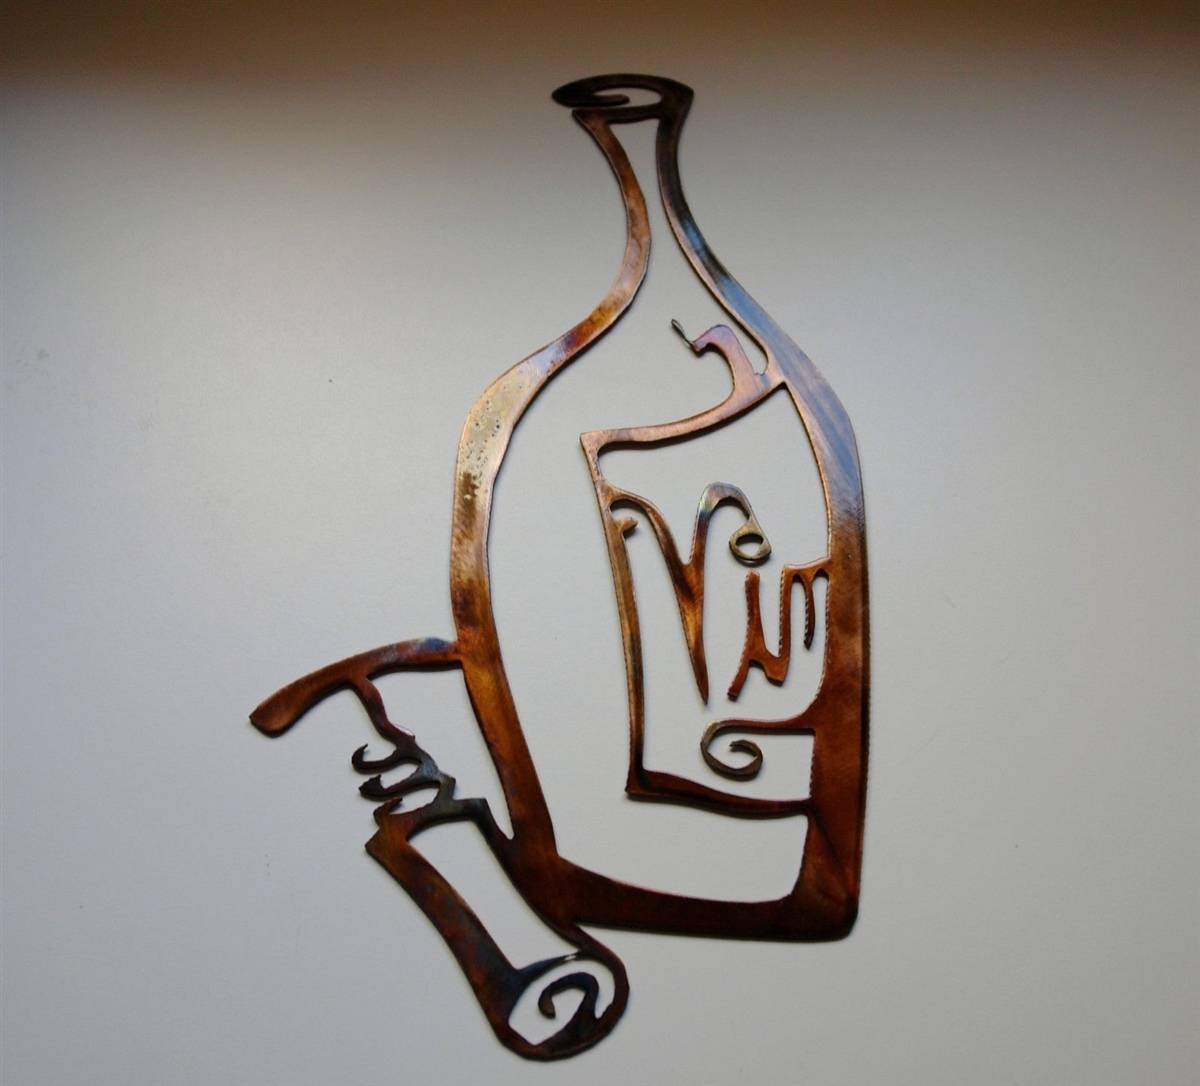 Vino! Metal Wall Art Decor, Wine Bottle And Opener Copper & Bronze throughout 2018 Wine Metal Wall Art